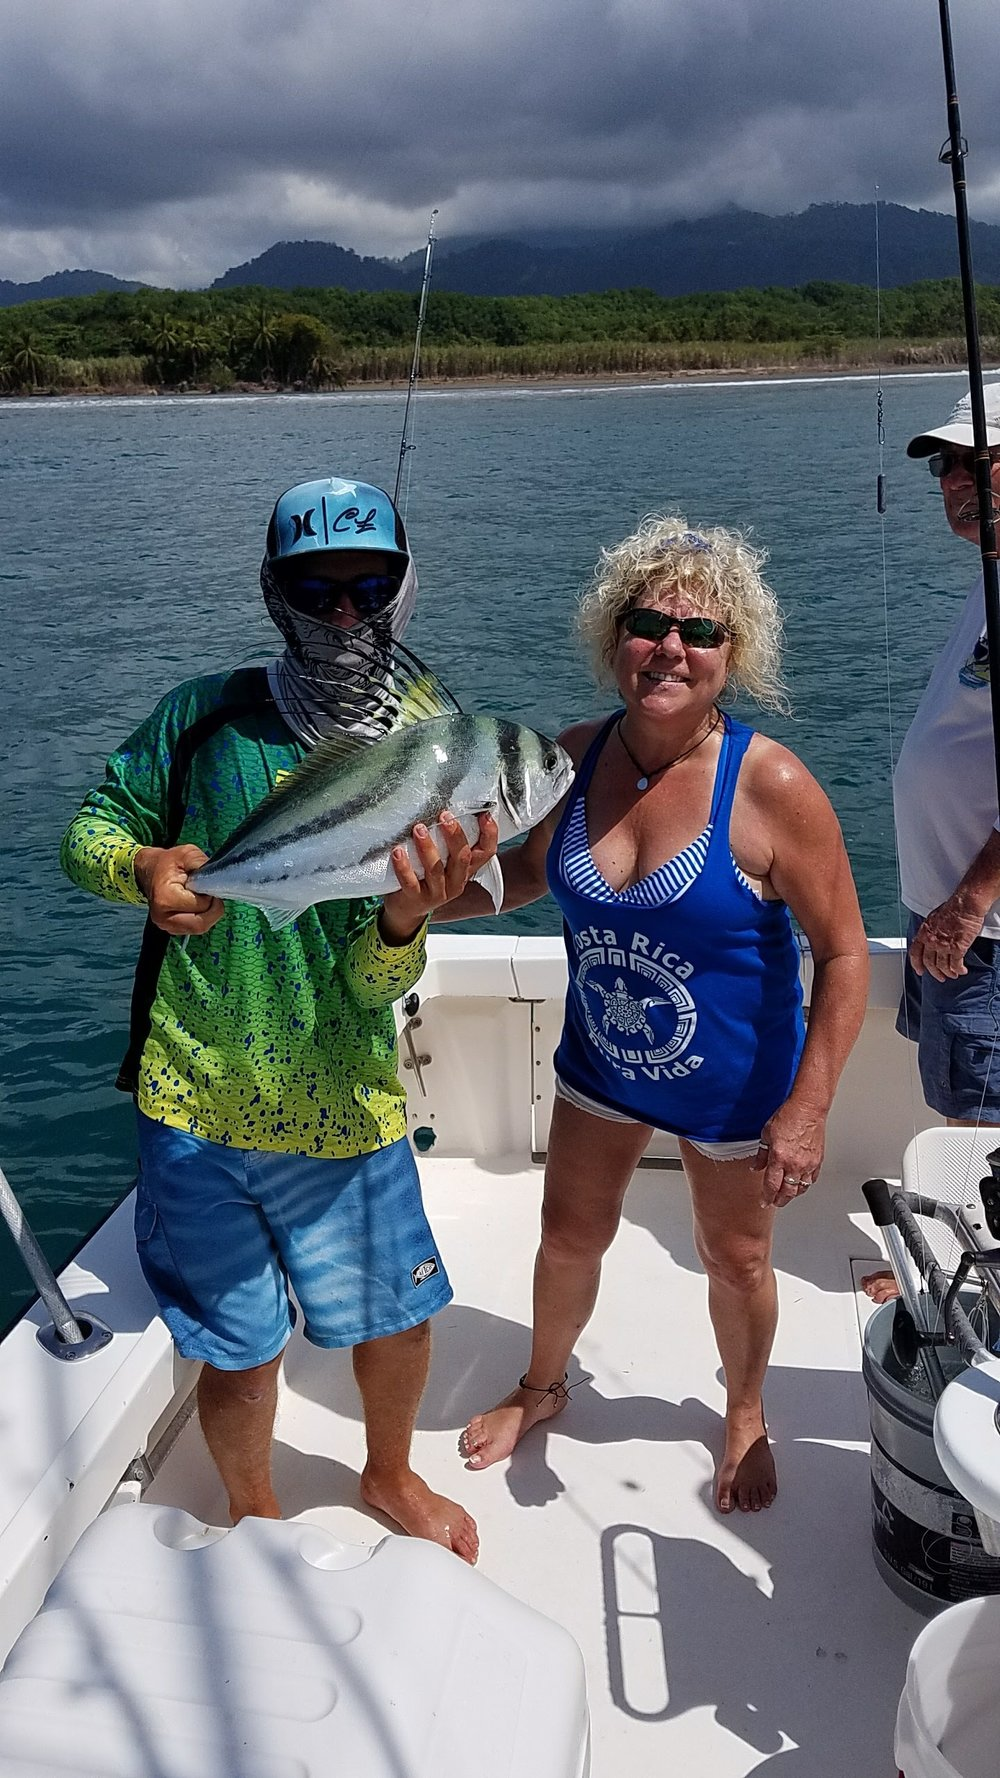 CINDY BAKER BOATED A NICE ROOSTERFISH DOING SOME INSHORE FISHING ON FEBRUARAY 8.